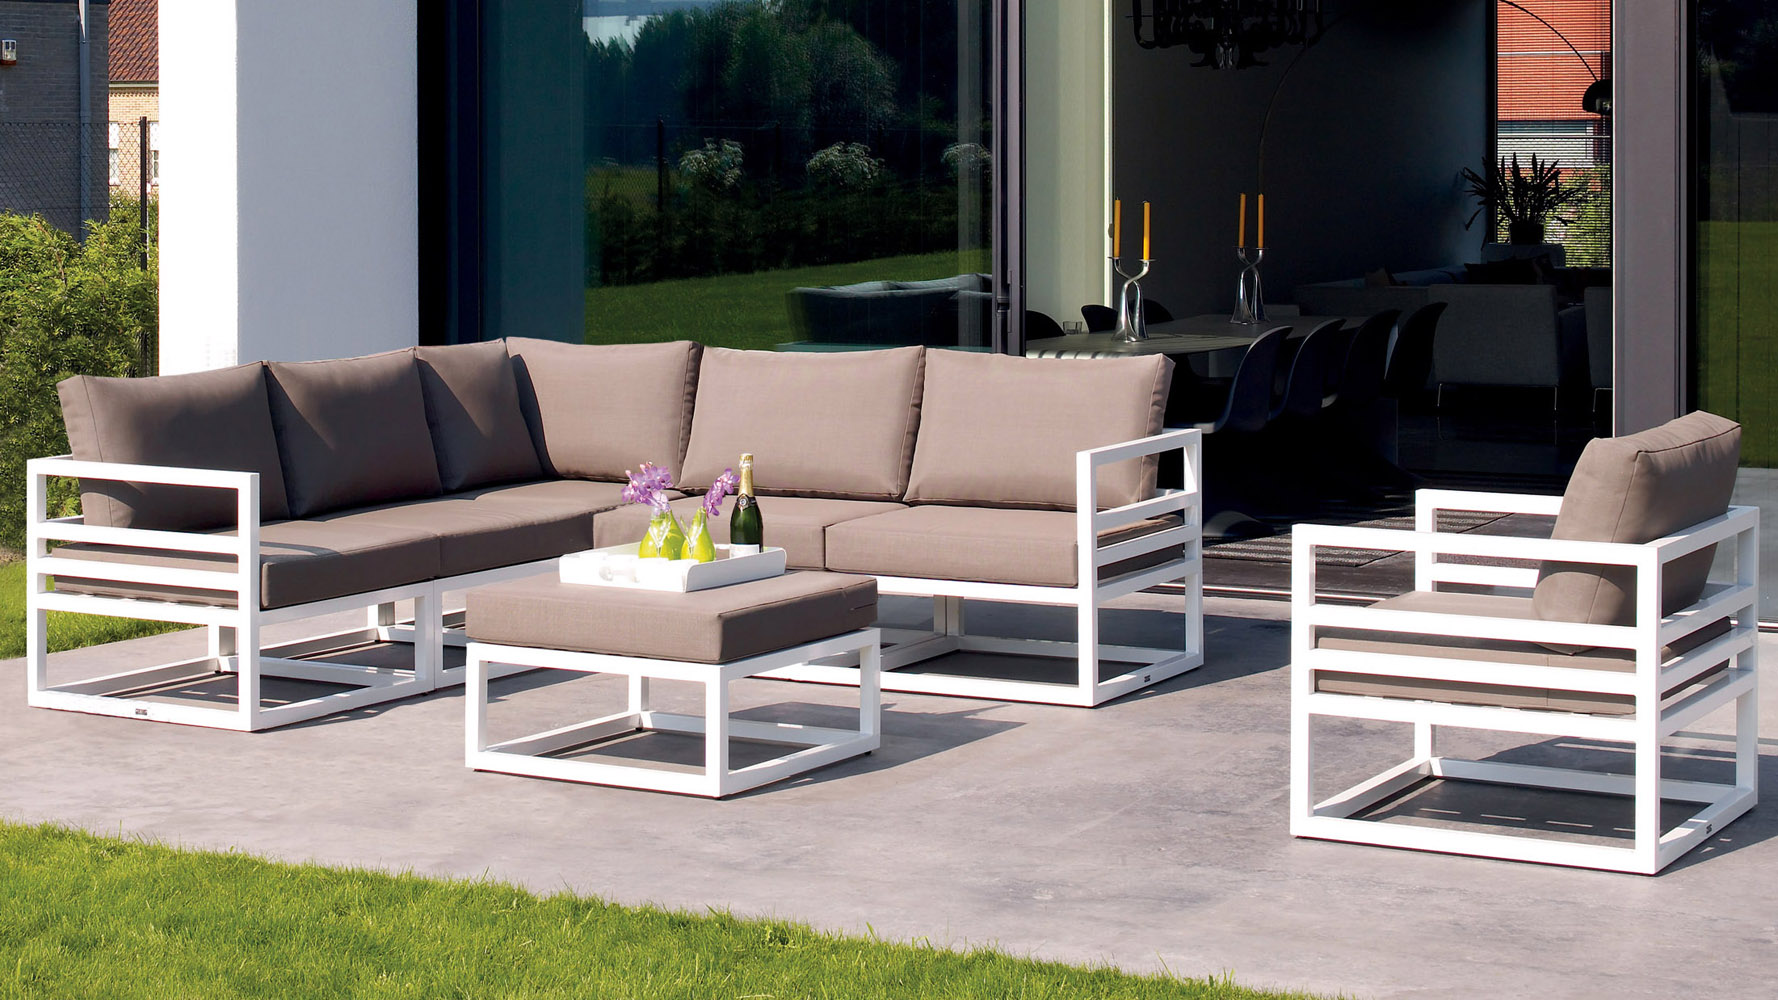 Outdoor Lounge Set Fotos - rockydurham.com -